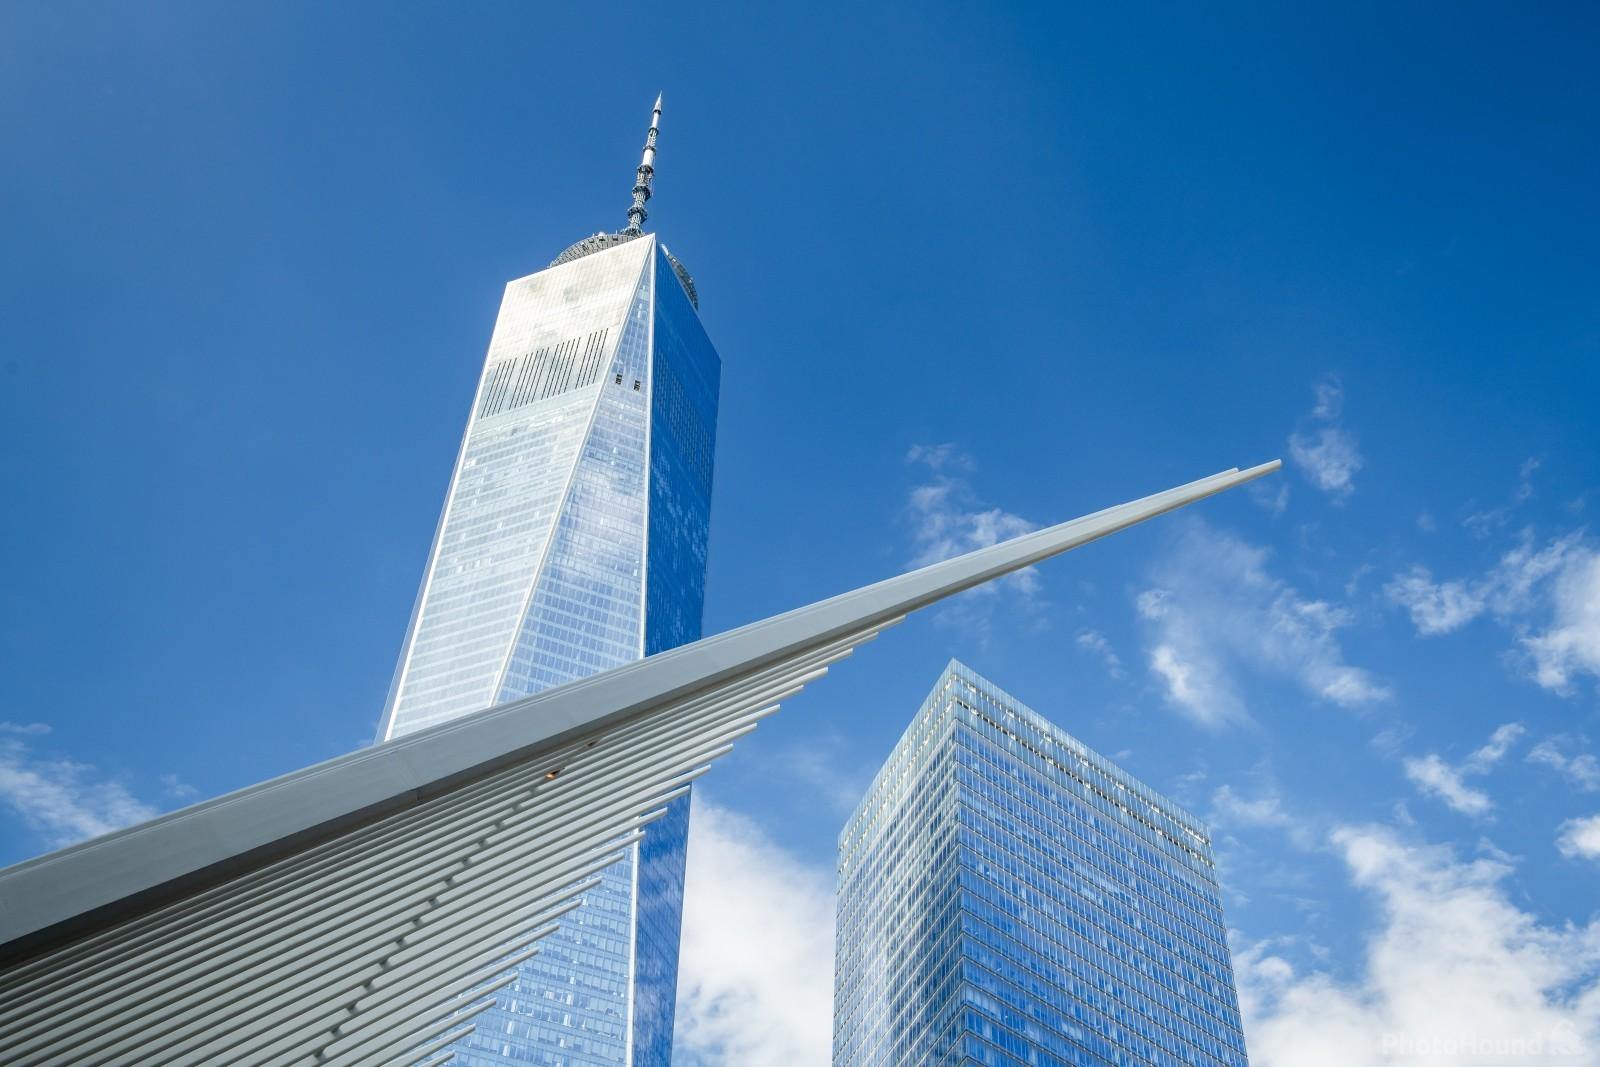 Just a piece of the Oculus with One WTC in the frame.